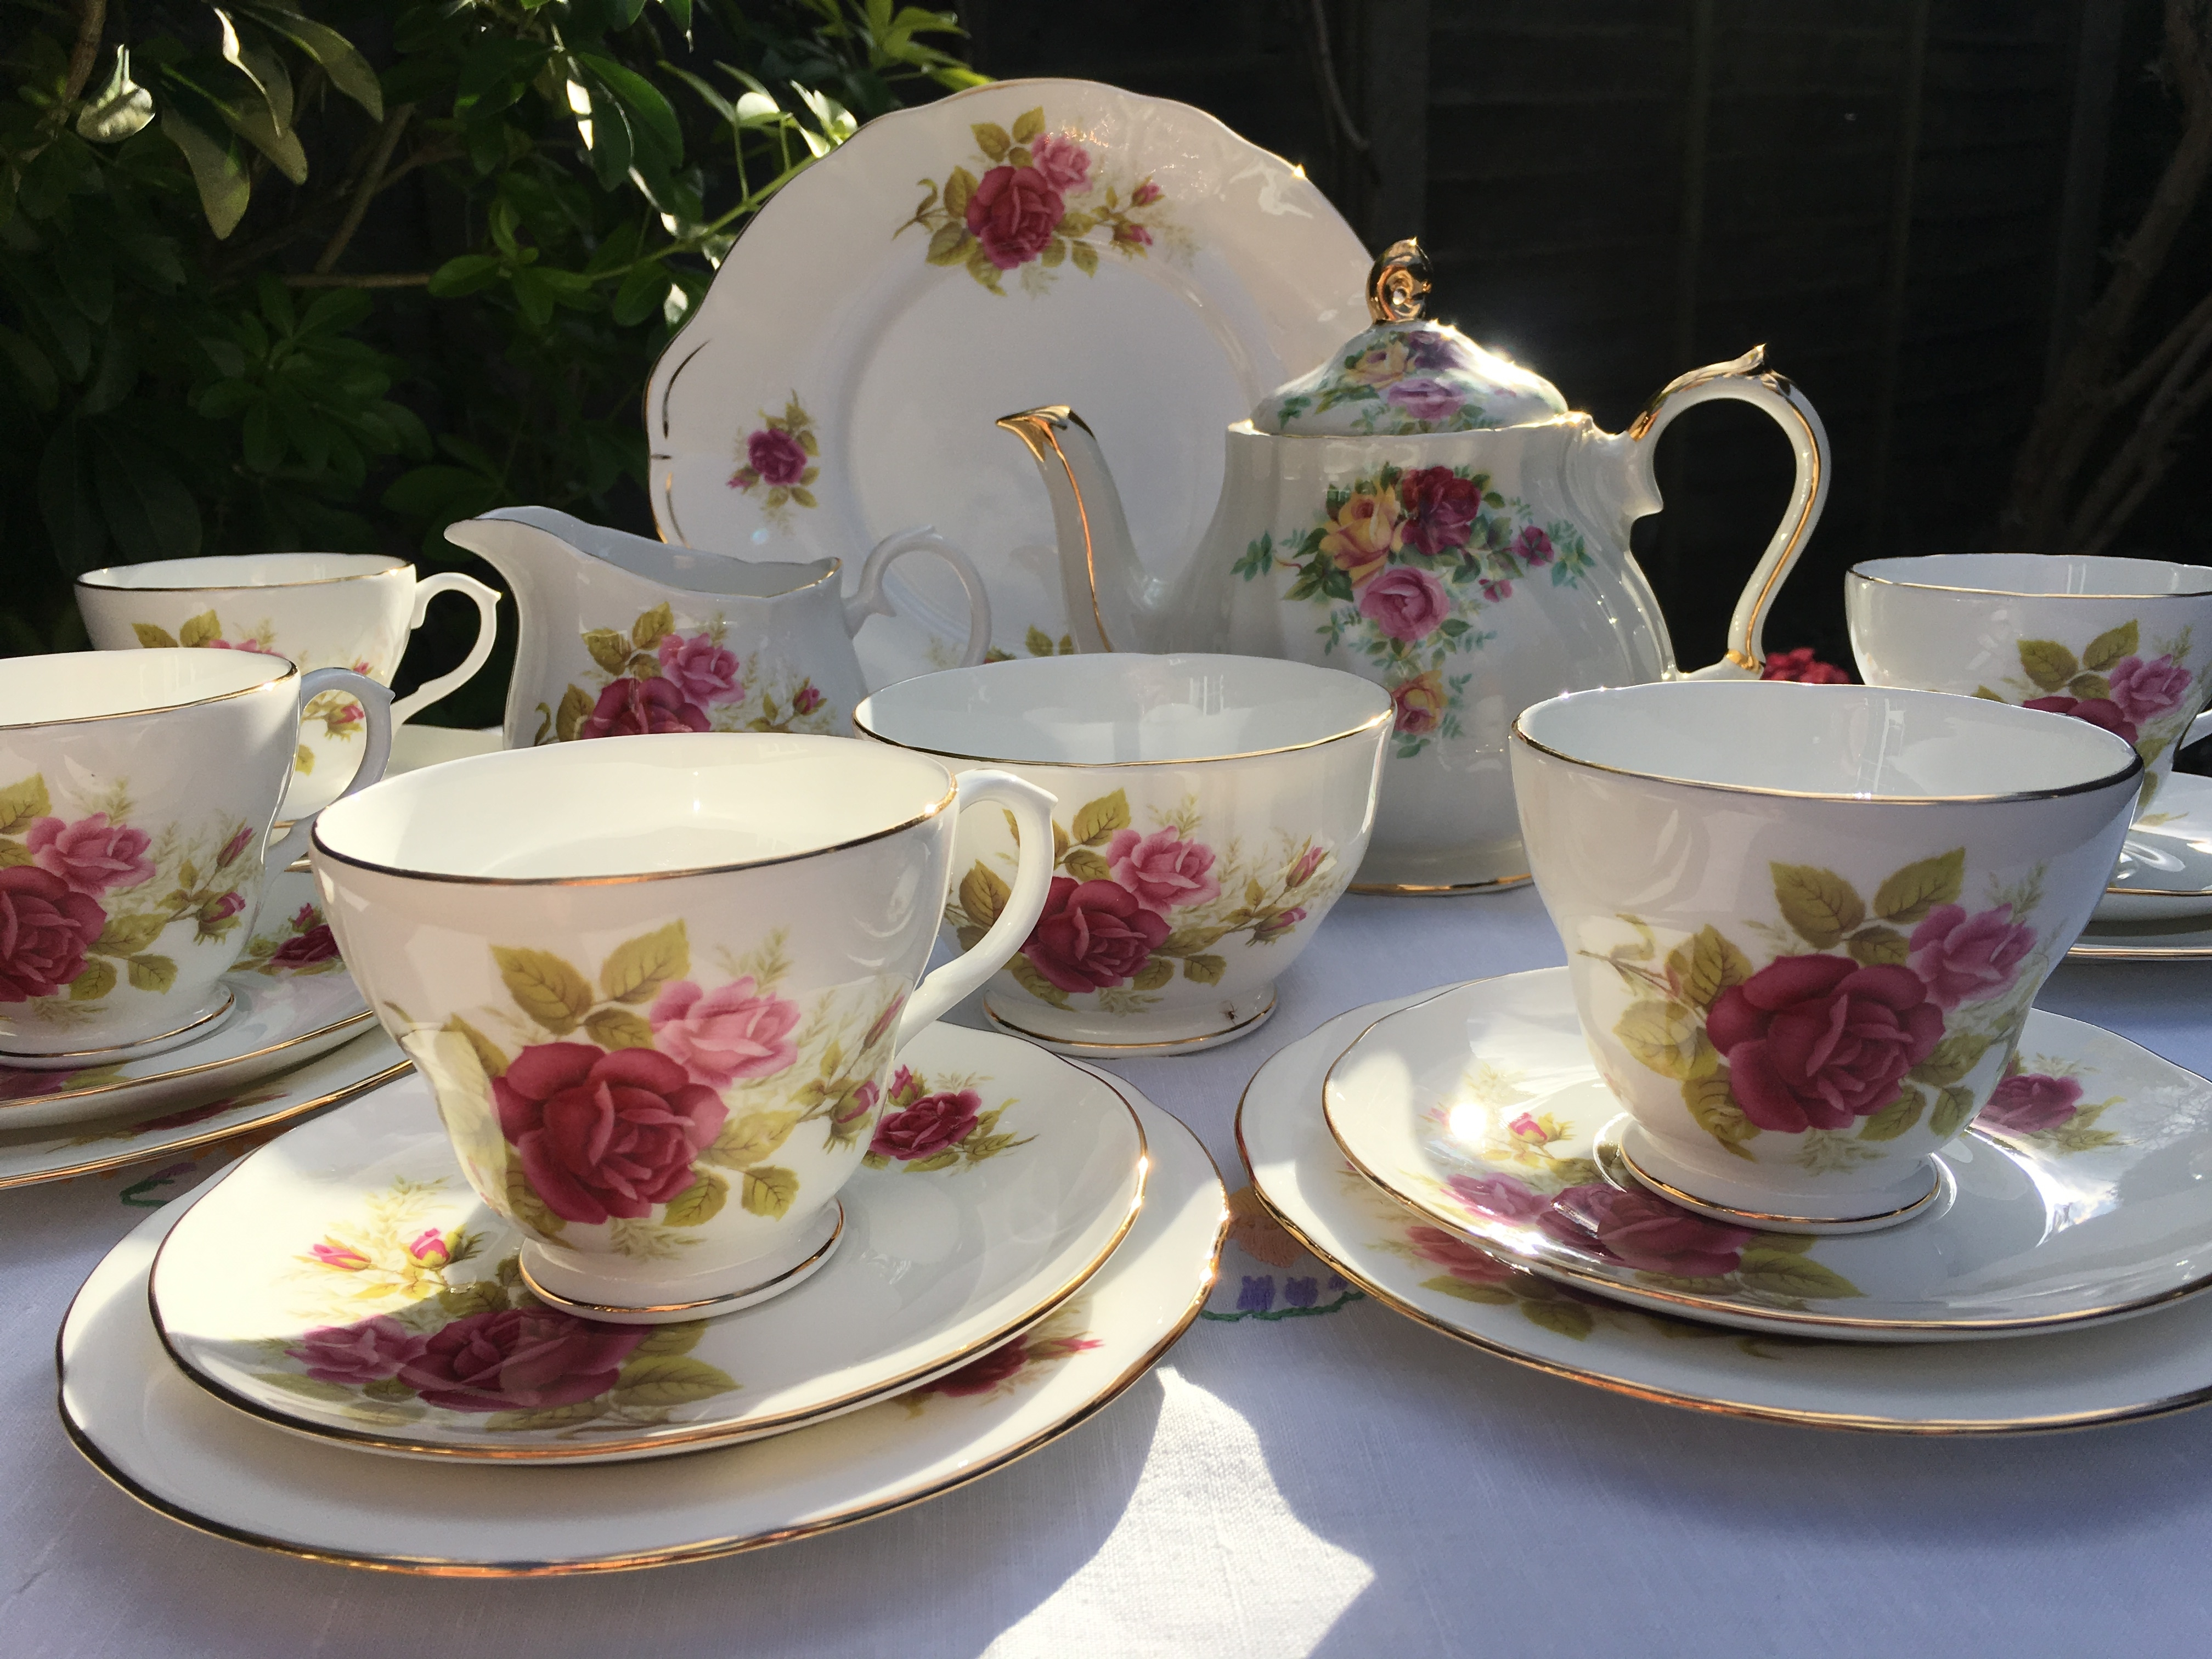 Duchess teaset with Sadler teapot